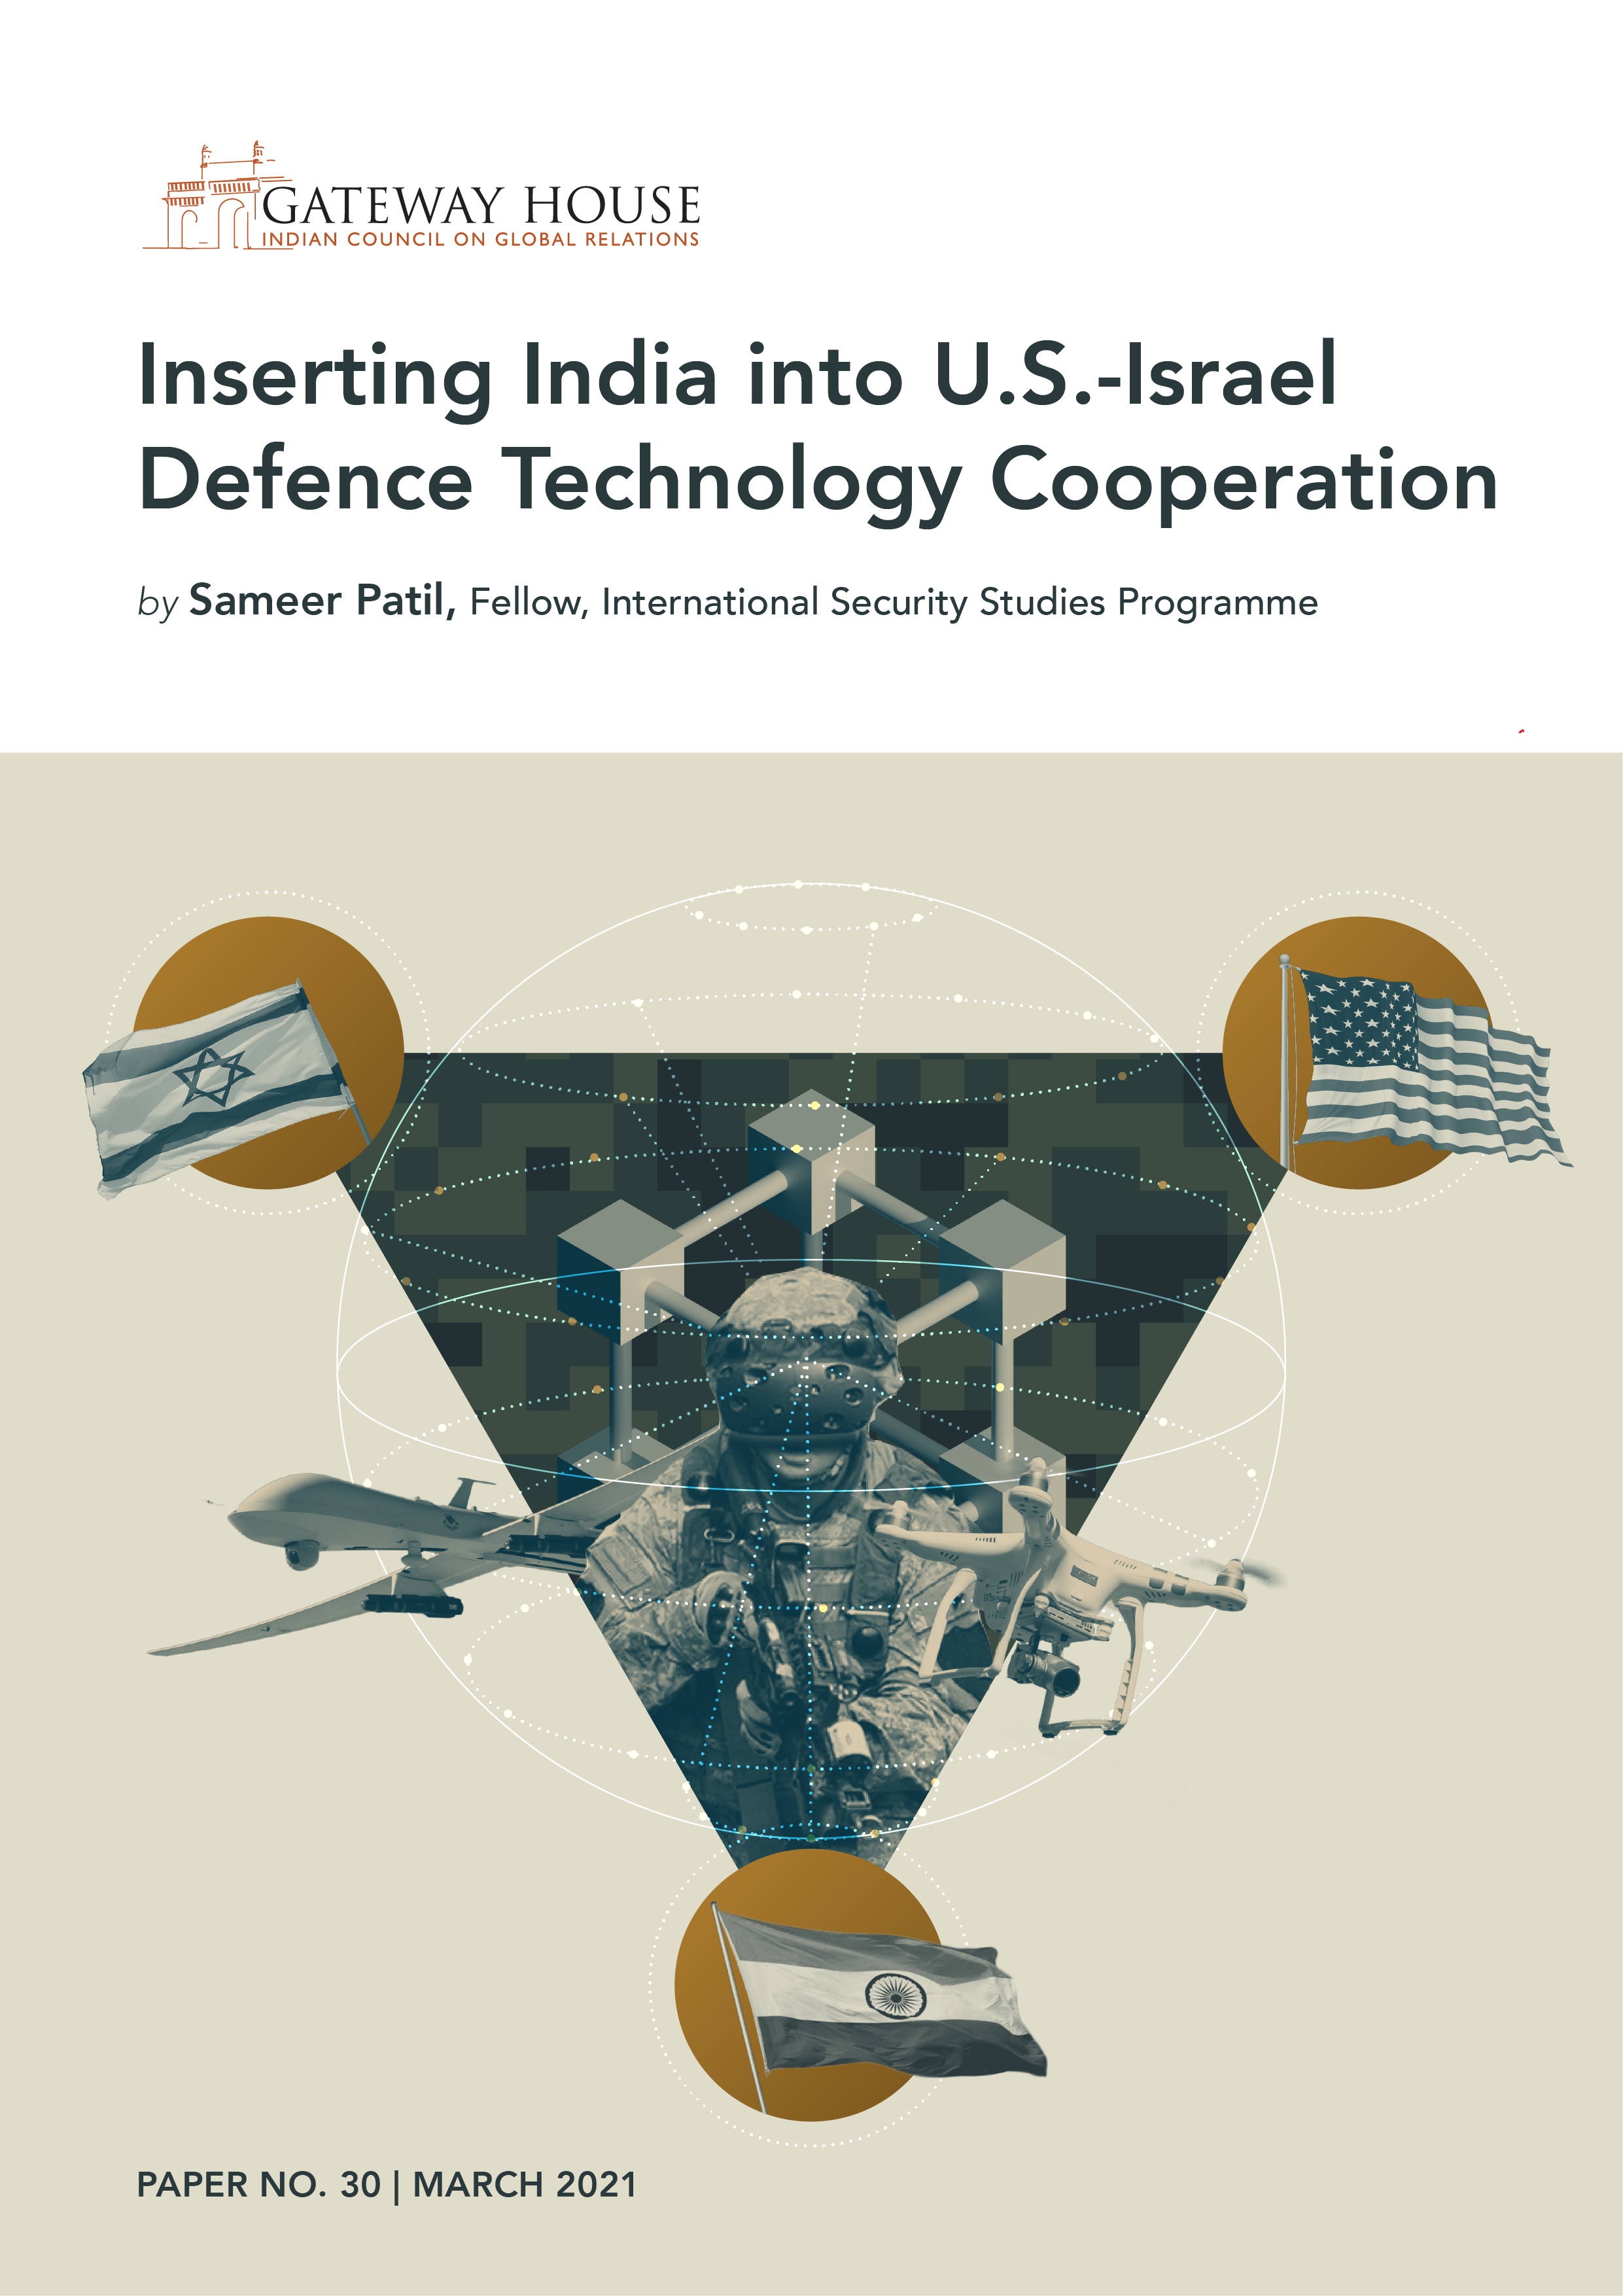 inserting india into u.s.-israel defence technology cooperation